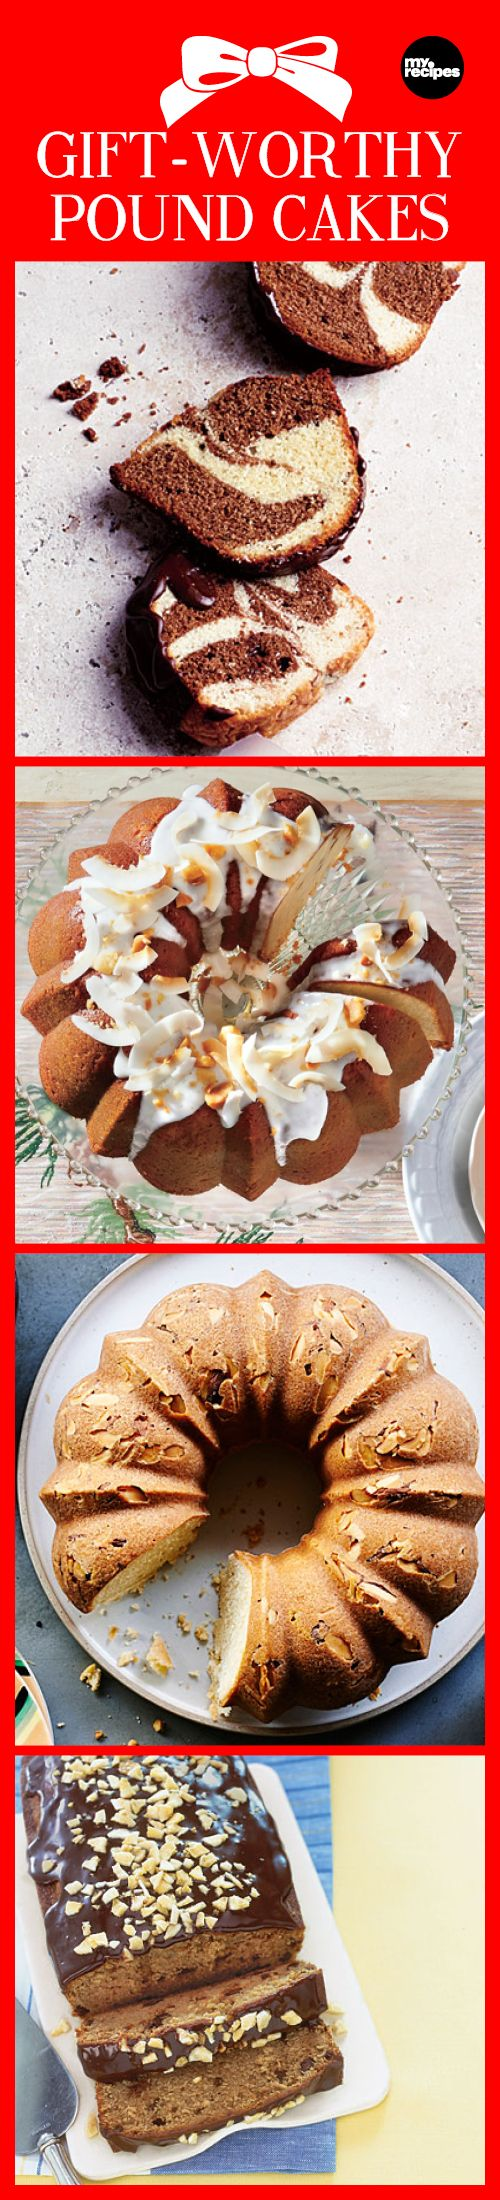 Gift-Worthy Pound Cakes | MyRecipes  A perfect pound cake makes a fantastic food gift for any occasion. Check out this collection of our best pound cake recipes to find one worthy of giving your friends and family — or for just enjoying yourself!